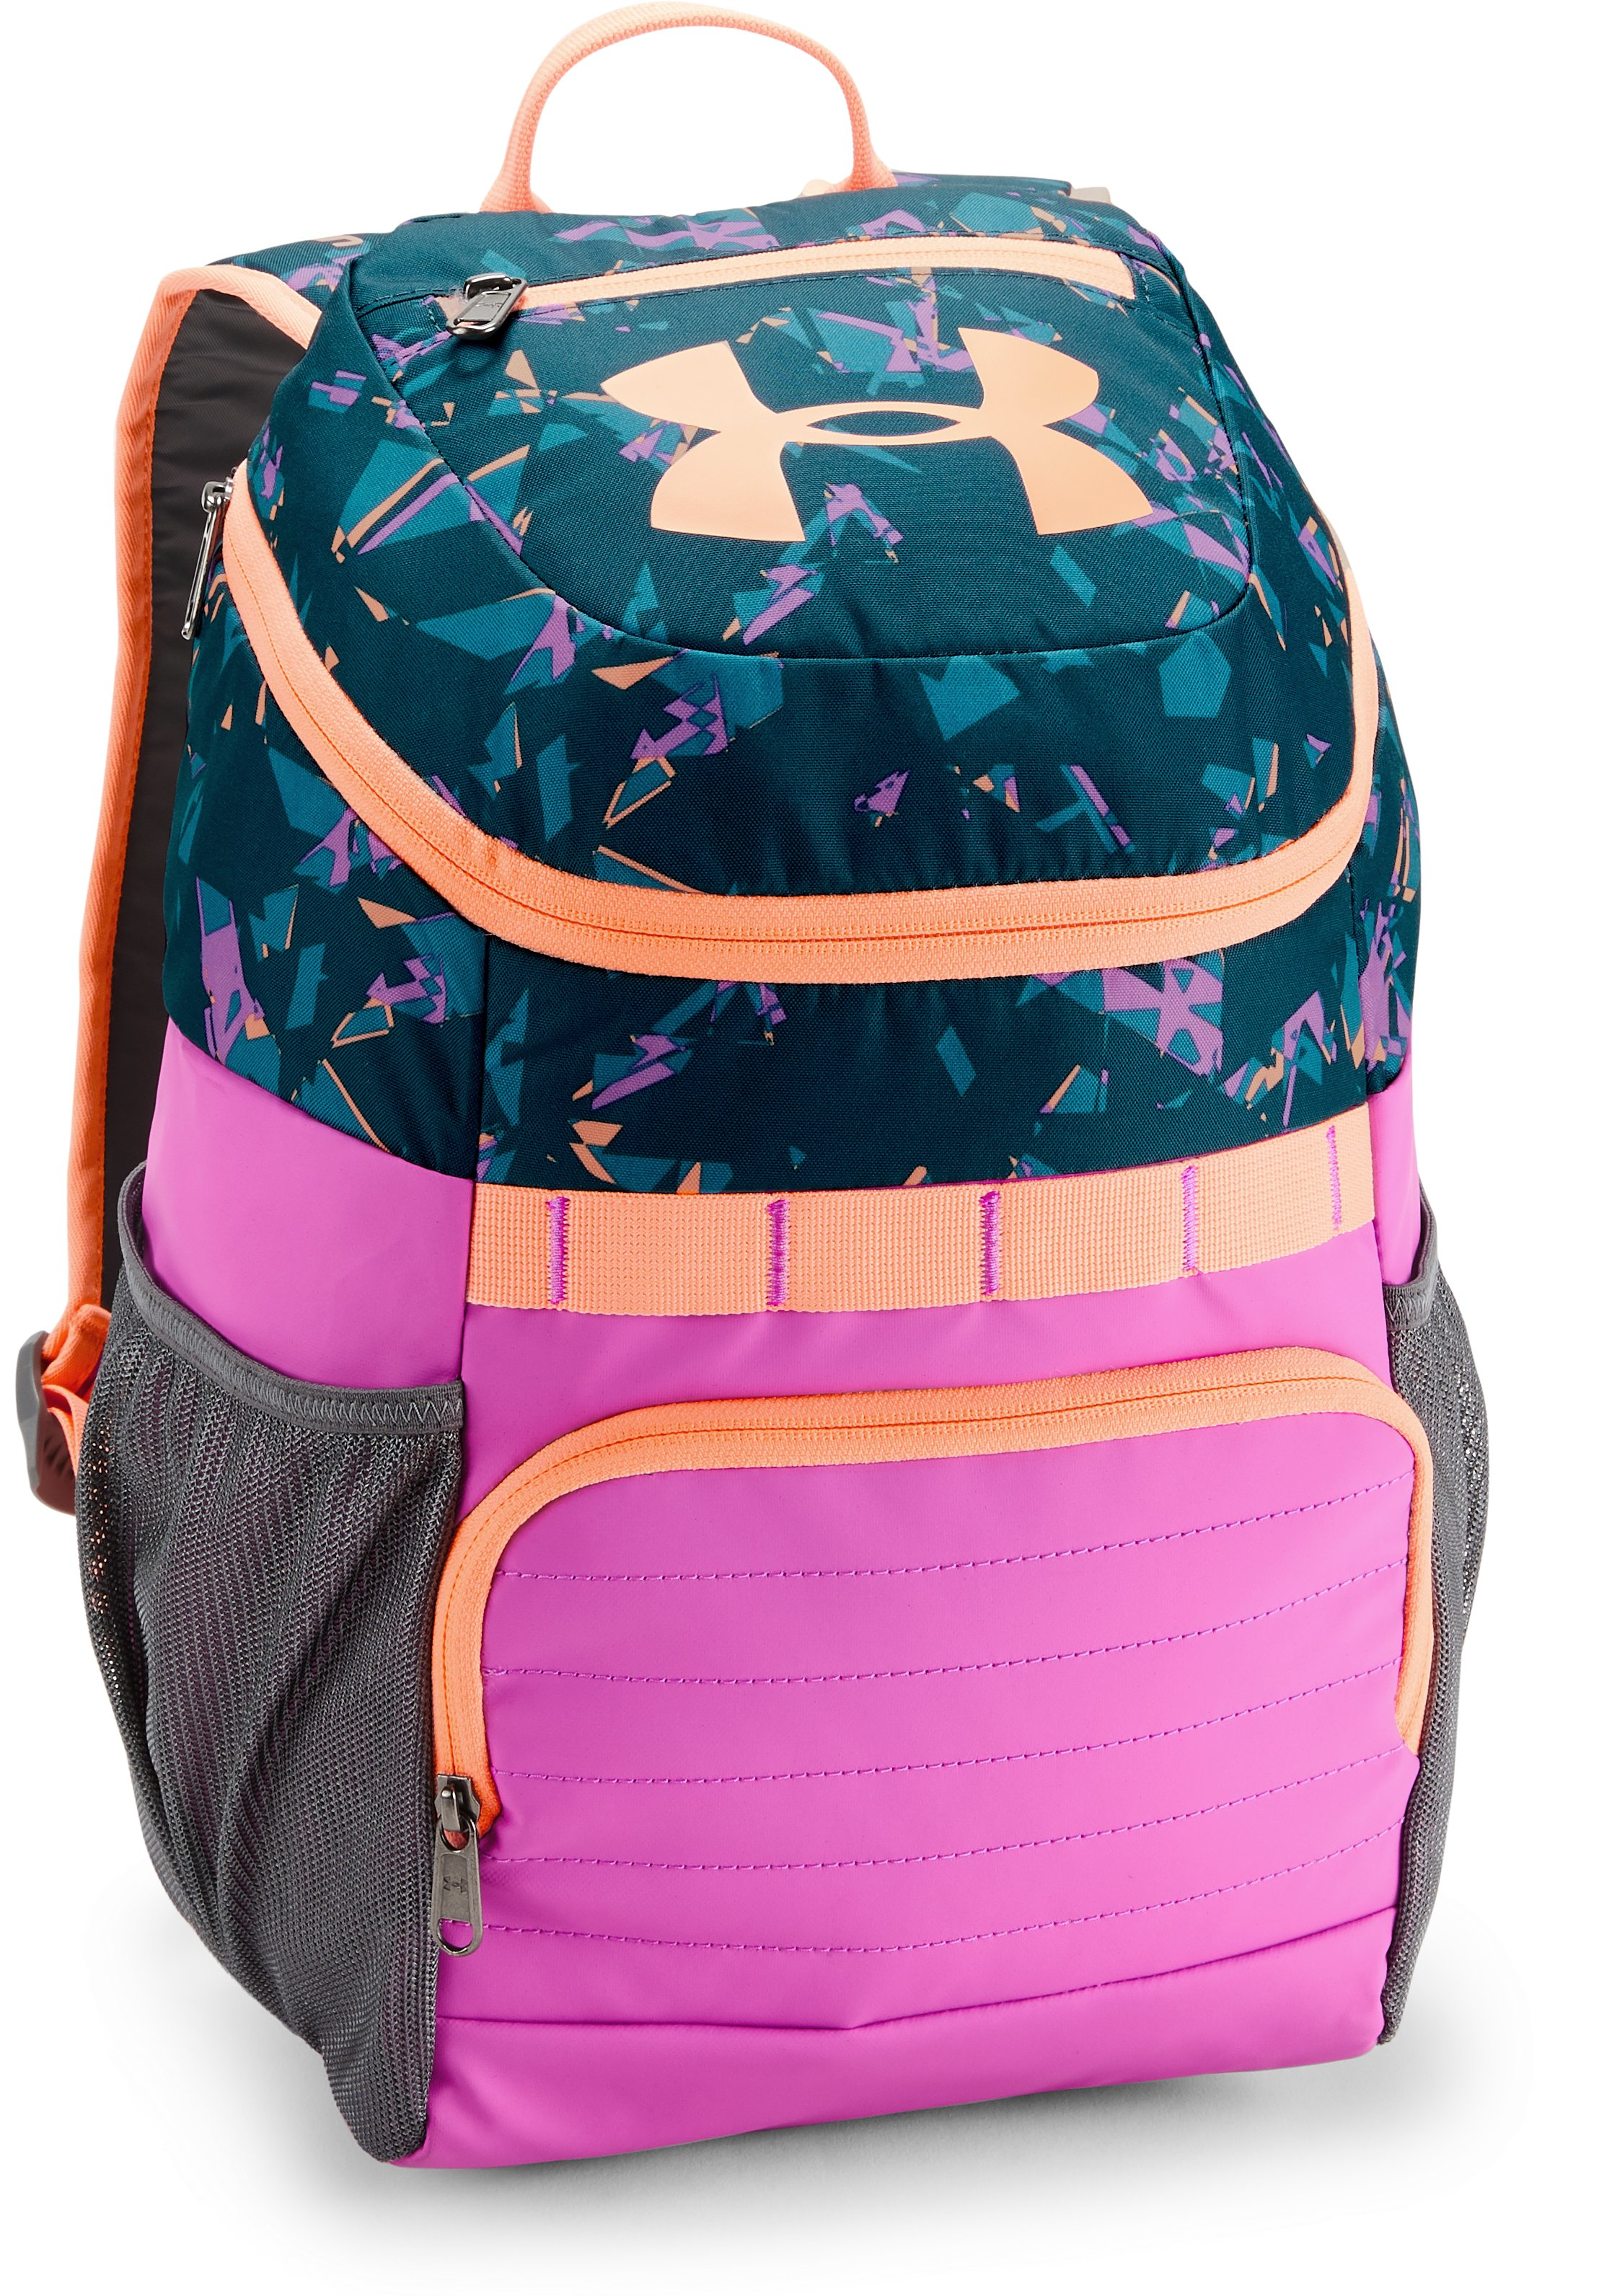 Large Fry Backpack, PEACH HORIZON, zoomed